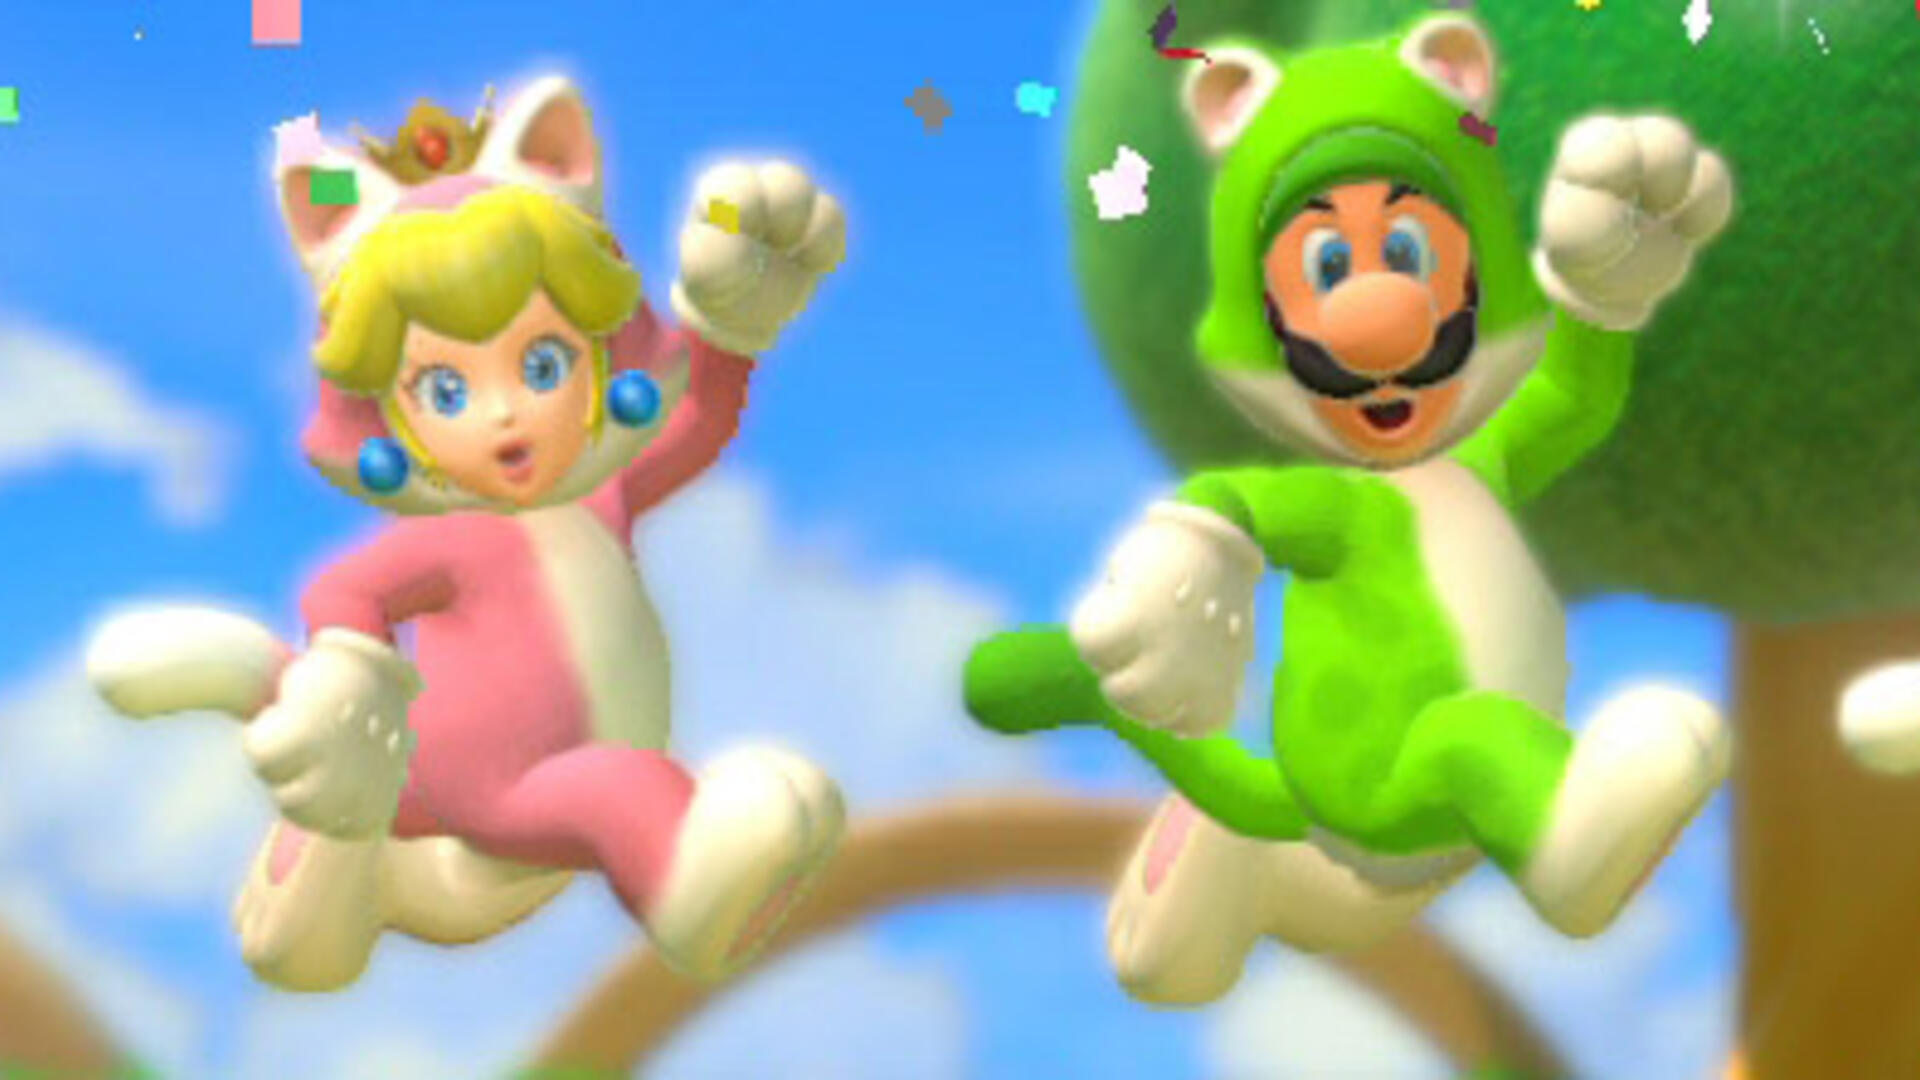 Remasters and Remakes We'd Like to See Make the Switch from Wii U